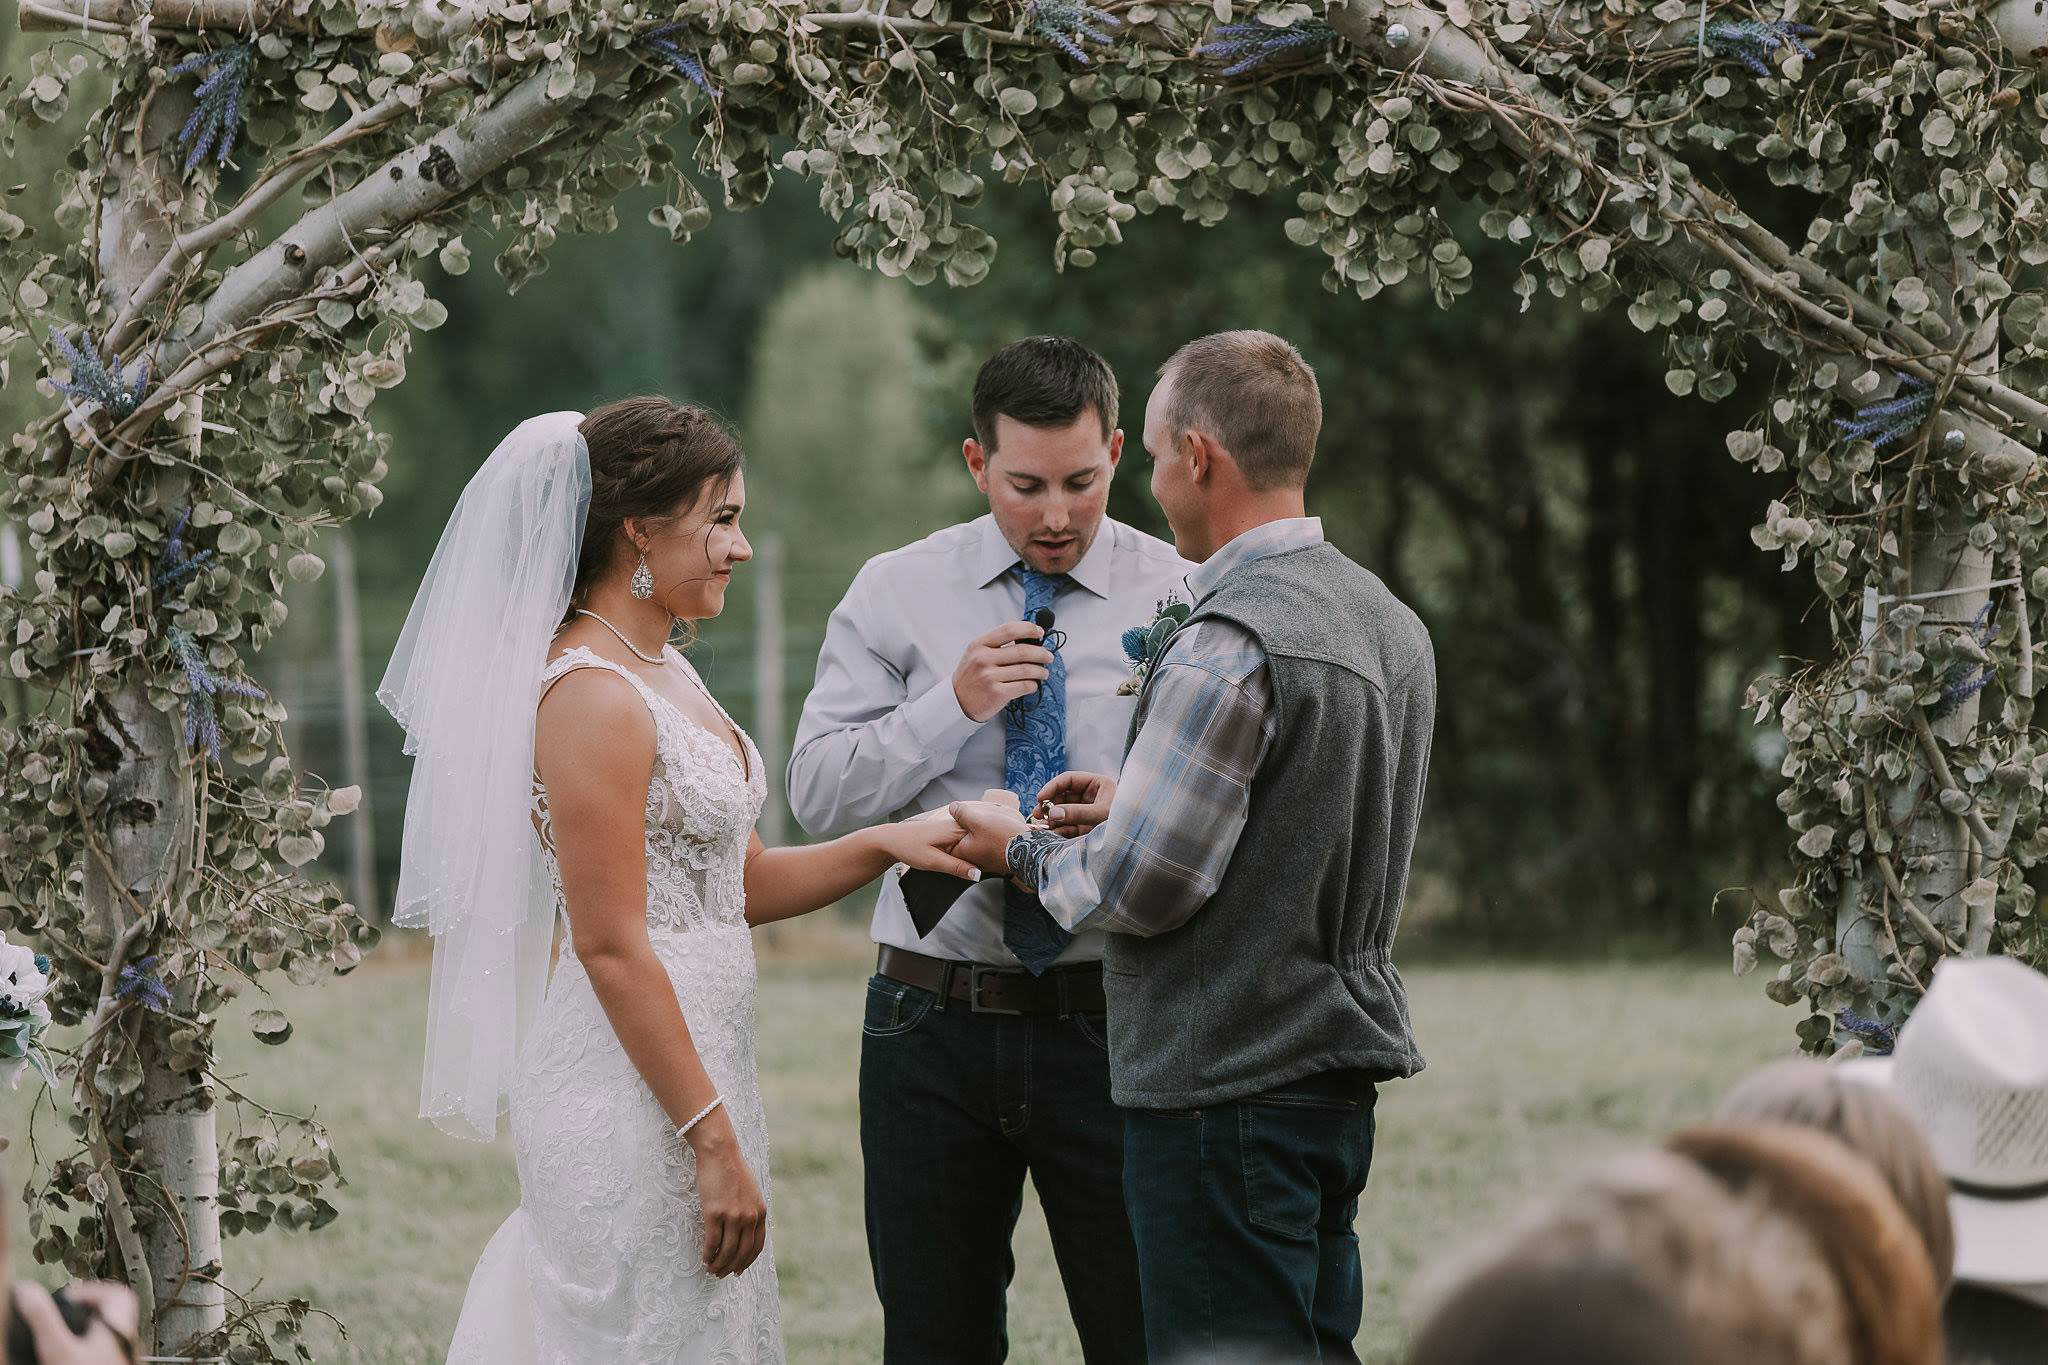 Wedding vows at Paradise Ranch in Pagosa Springs, Colorado